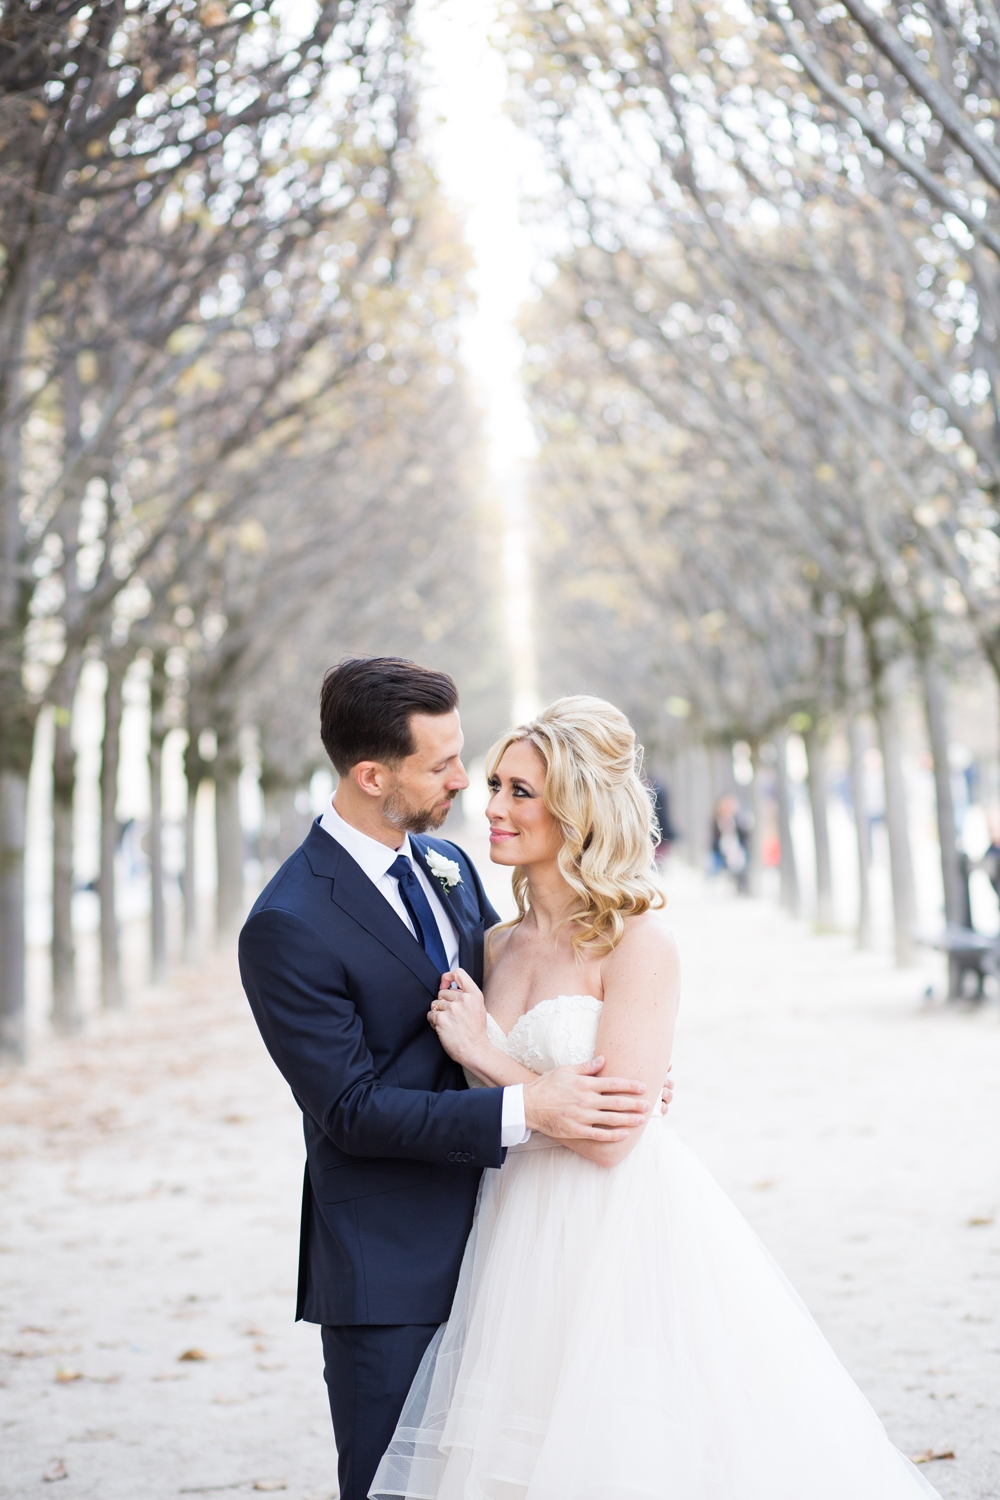 Karen Wise Photography Paris Wedding Featured on Style Me Pretty